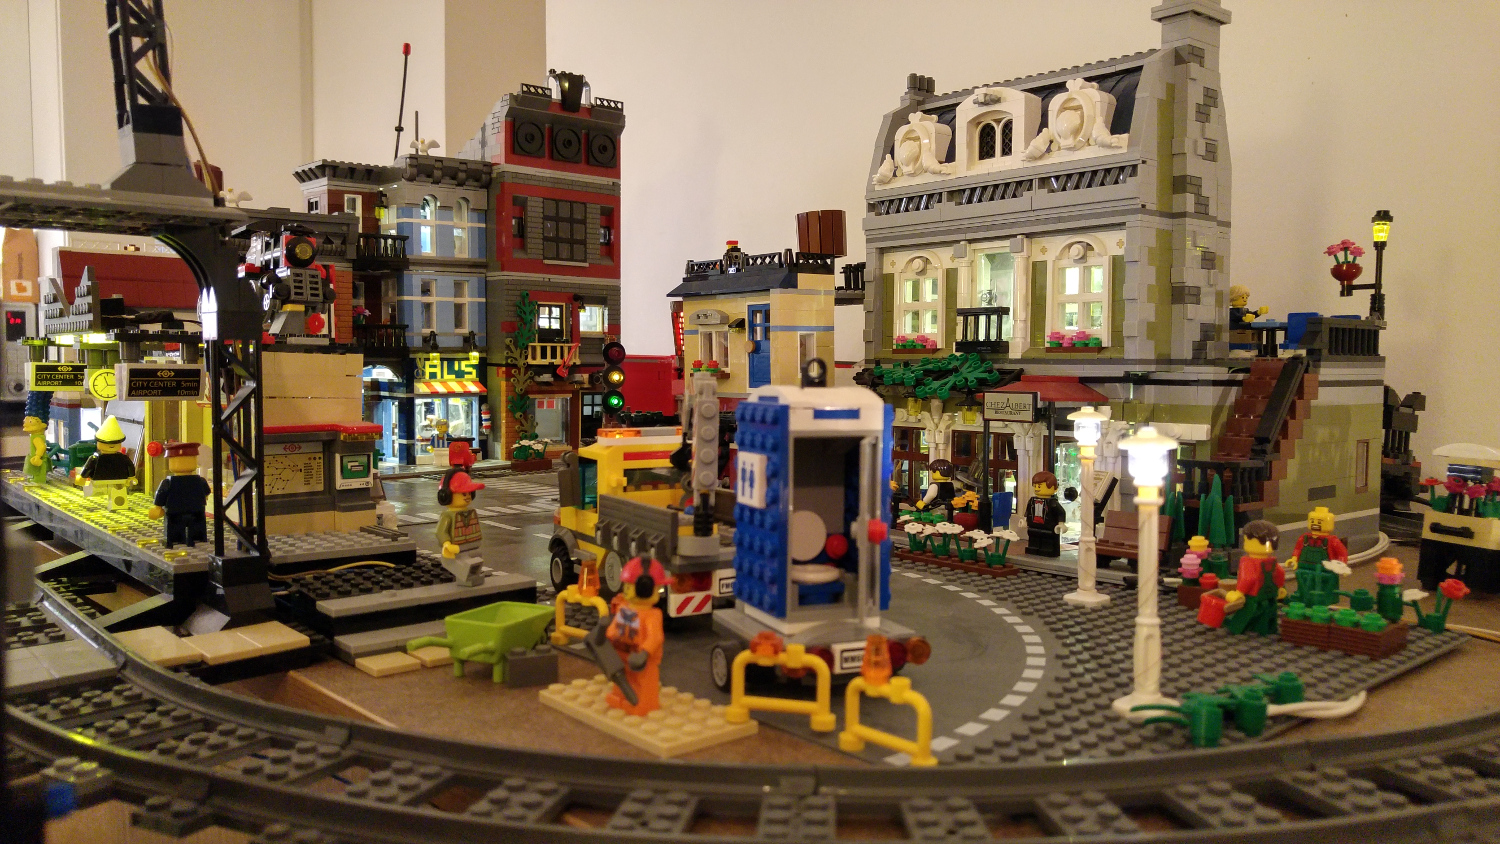 Be careful of the roadworks in the LEGO city